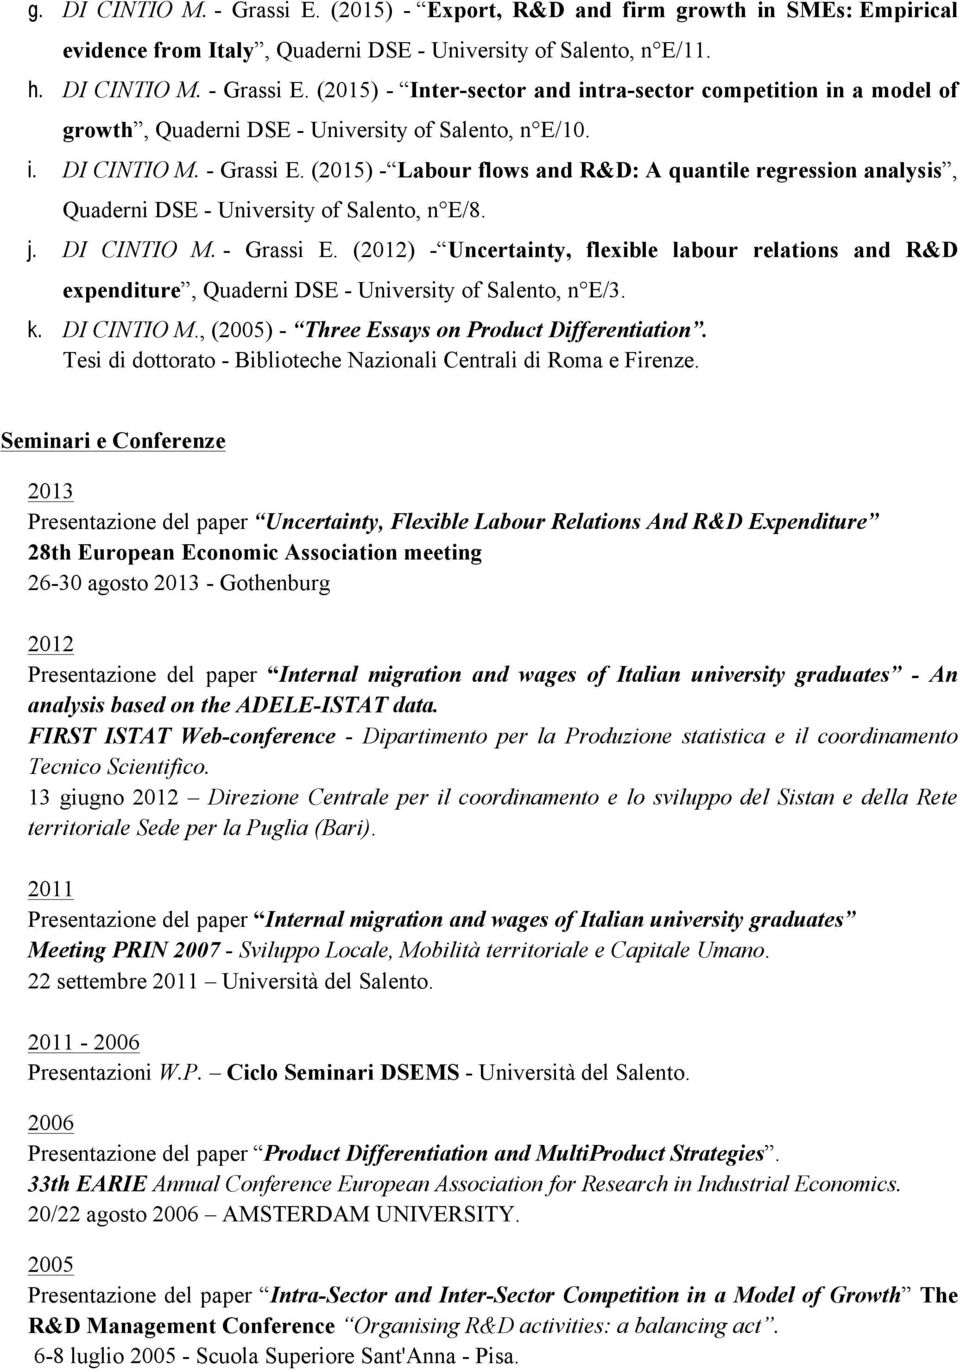 k. DI CINTIO M., (2005) - Three Essays on Product Differentiation. Tesi di dottorato - Biblioteche Nazionali Centrali di Roma e Firenze.